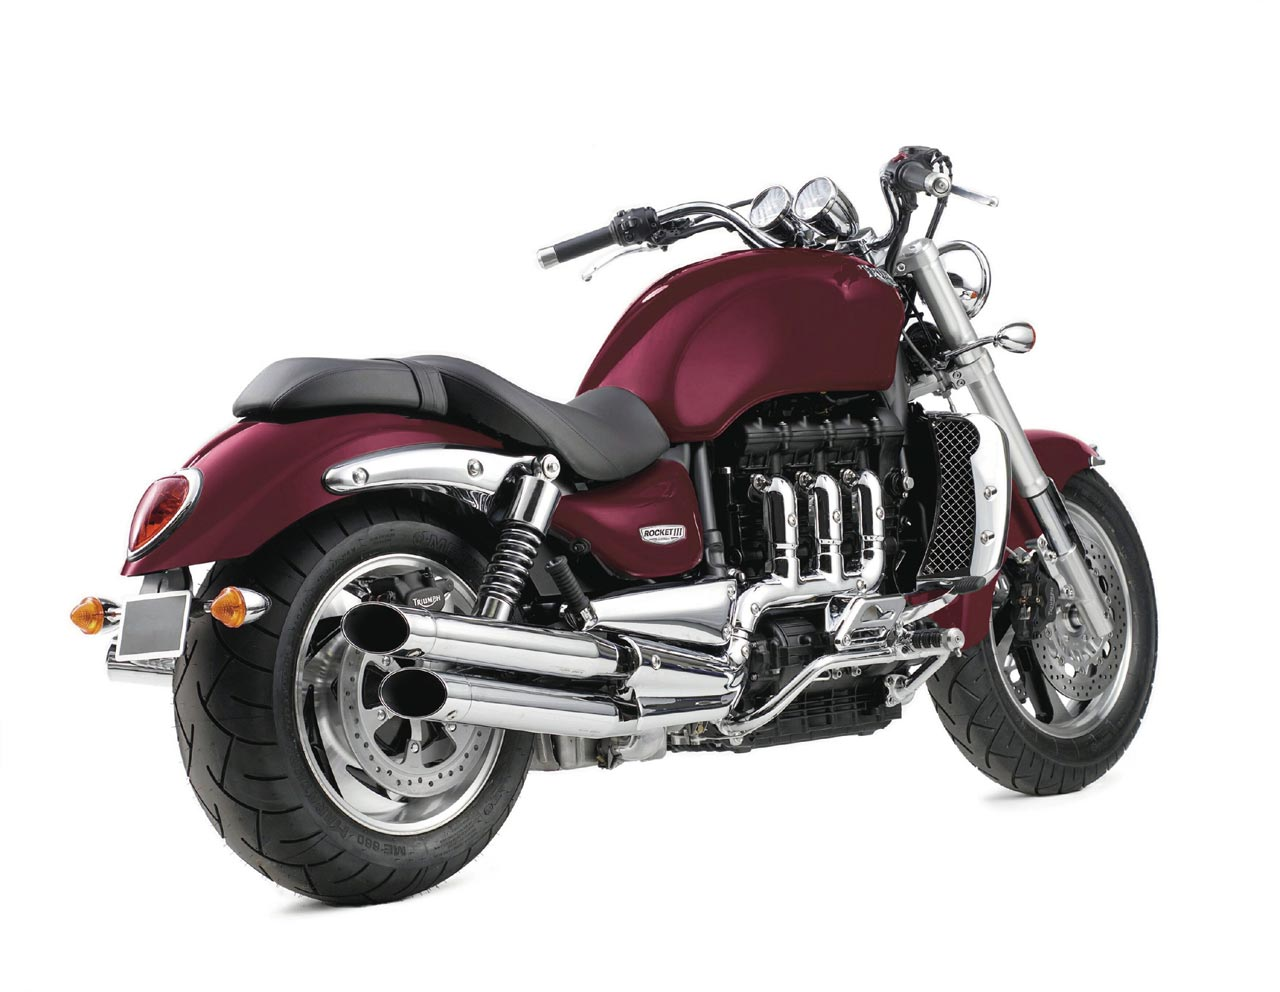 2006 triumph rocket iii. Black Bedroom Furniture Sets. Home Design Ideas